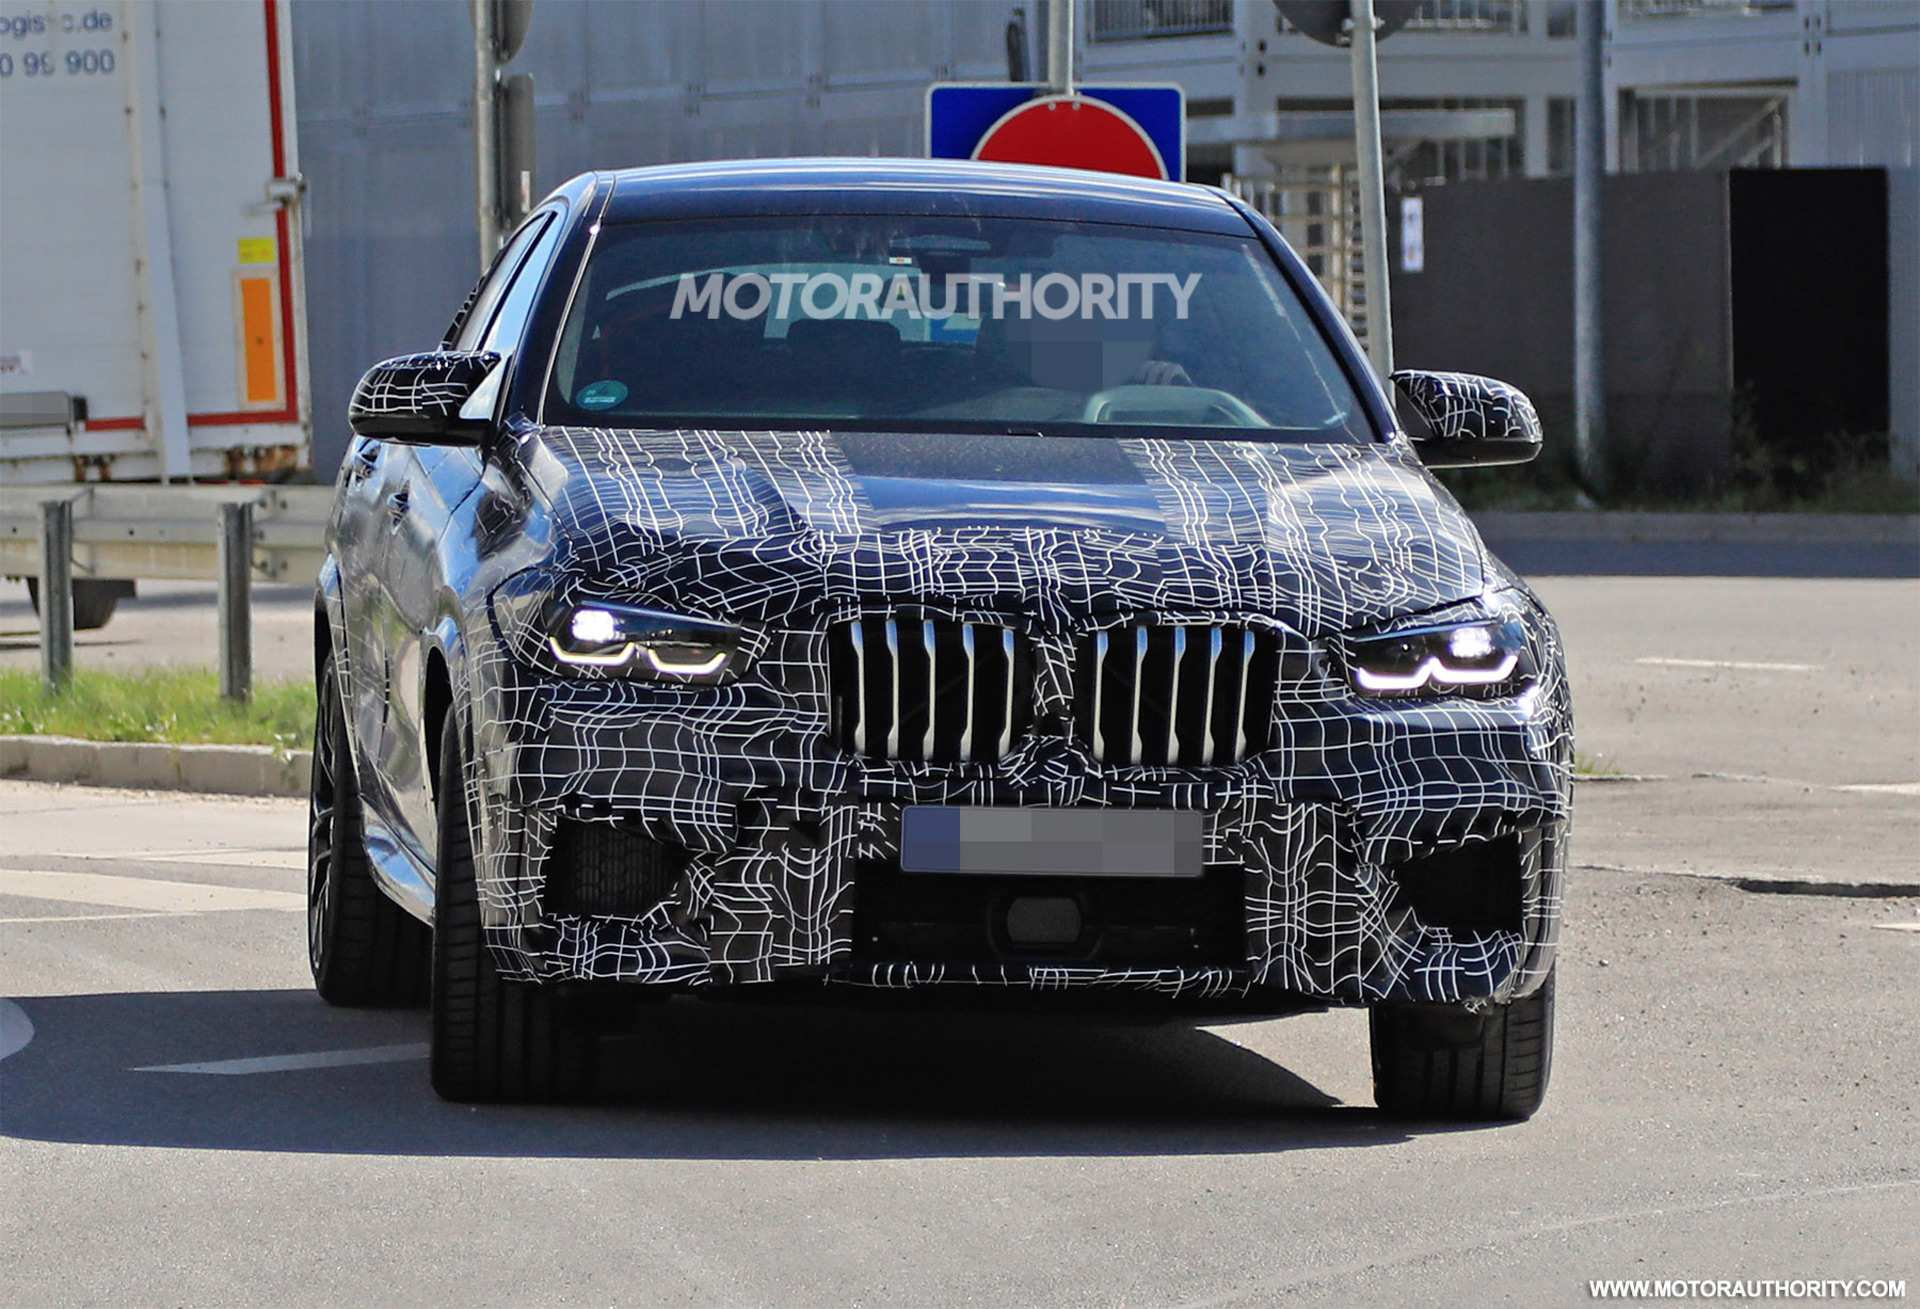 51 All New When Will 2020 BMW X6 Be Available Wallpaper